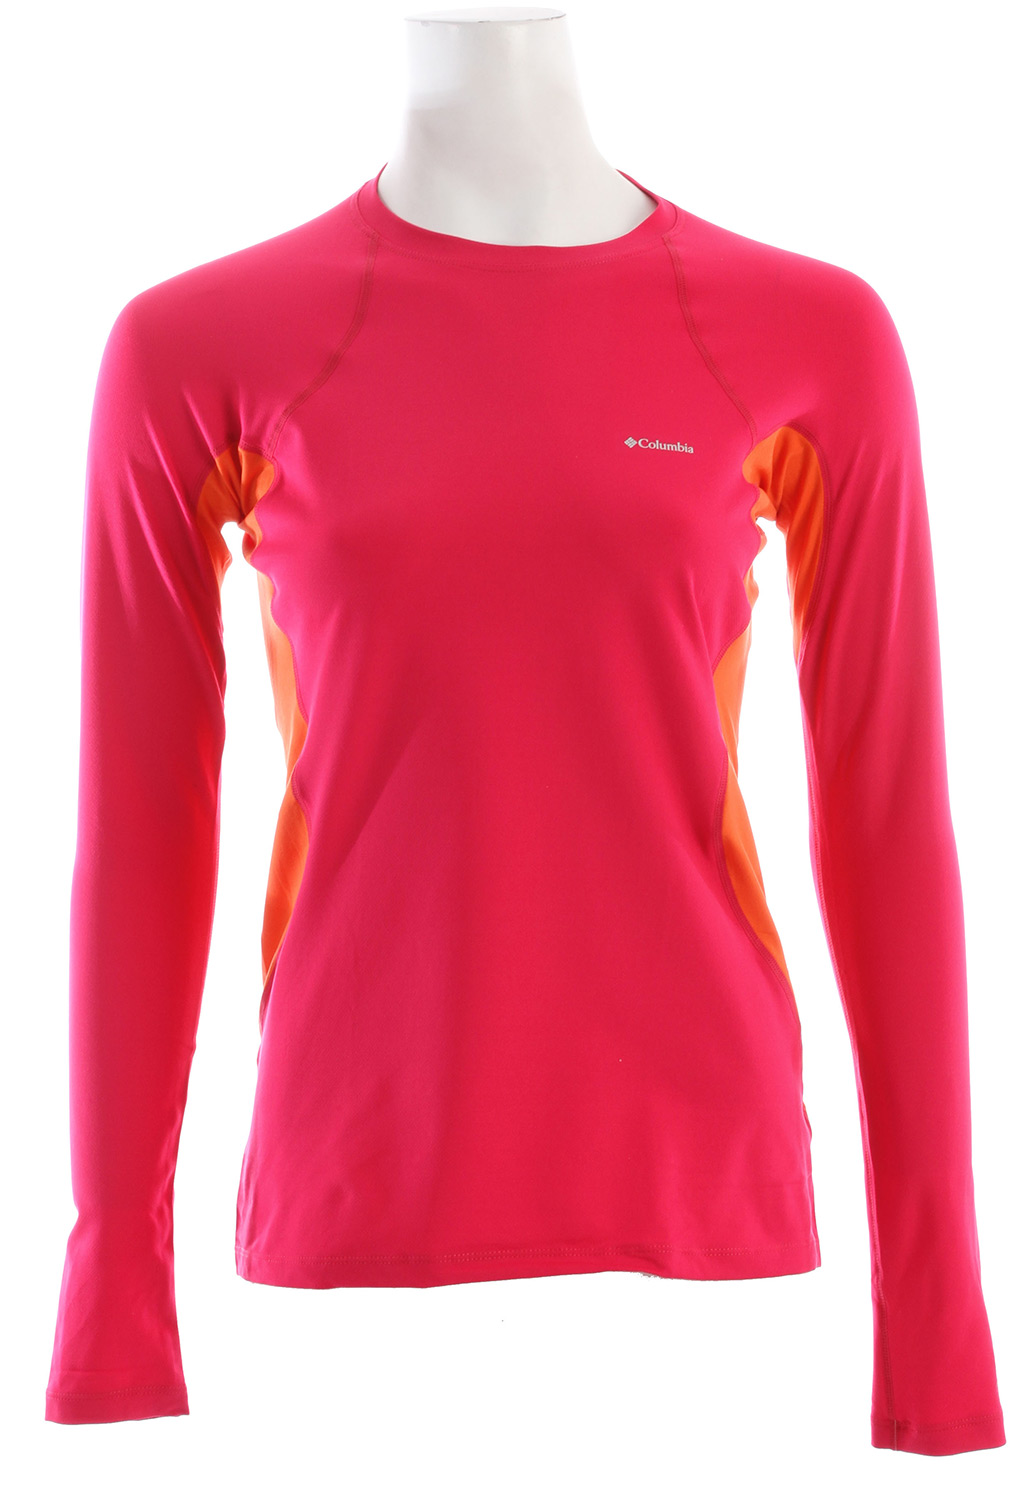 With thermal reflectivity for lightweight warmth and sweat-wicking inserts, this midweight top is the ideal all-day baselayer for aerobic activity. Finely tuned ergonomic seaming cuts a sleek, comfortable-wearing silhouette. Key Features of the Columbia Midweight L/S Baselayer Top: Omni-Wick inserts keep you dry and comfortable Omni-Heat thermal reflective lining for lightweight, breathable warmth Performance fit Antimicrobial 4-way comfort stretch and ergonomic seaming Fabric: Omni-Wick inserts under arms and at side torso Omni-Heat thermal reflective lining 85% polyester/15% elastane sweet rev. - $43.95